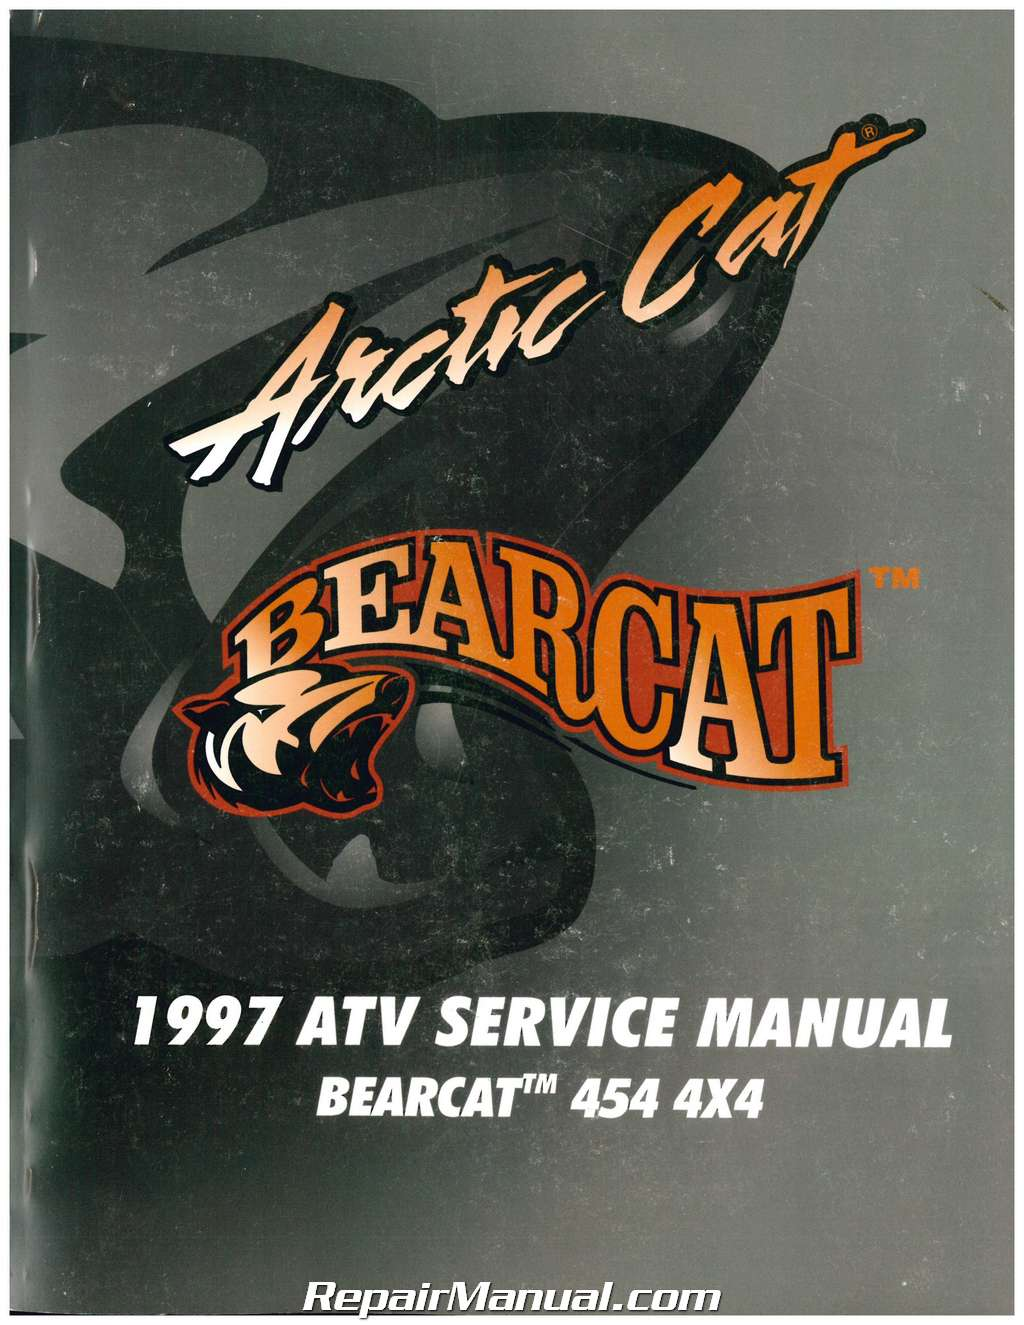 1997 Arctic Cat Bearcat 454 4 U00d74 Atv Service Manual